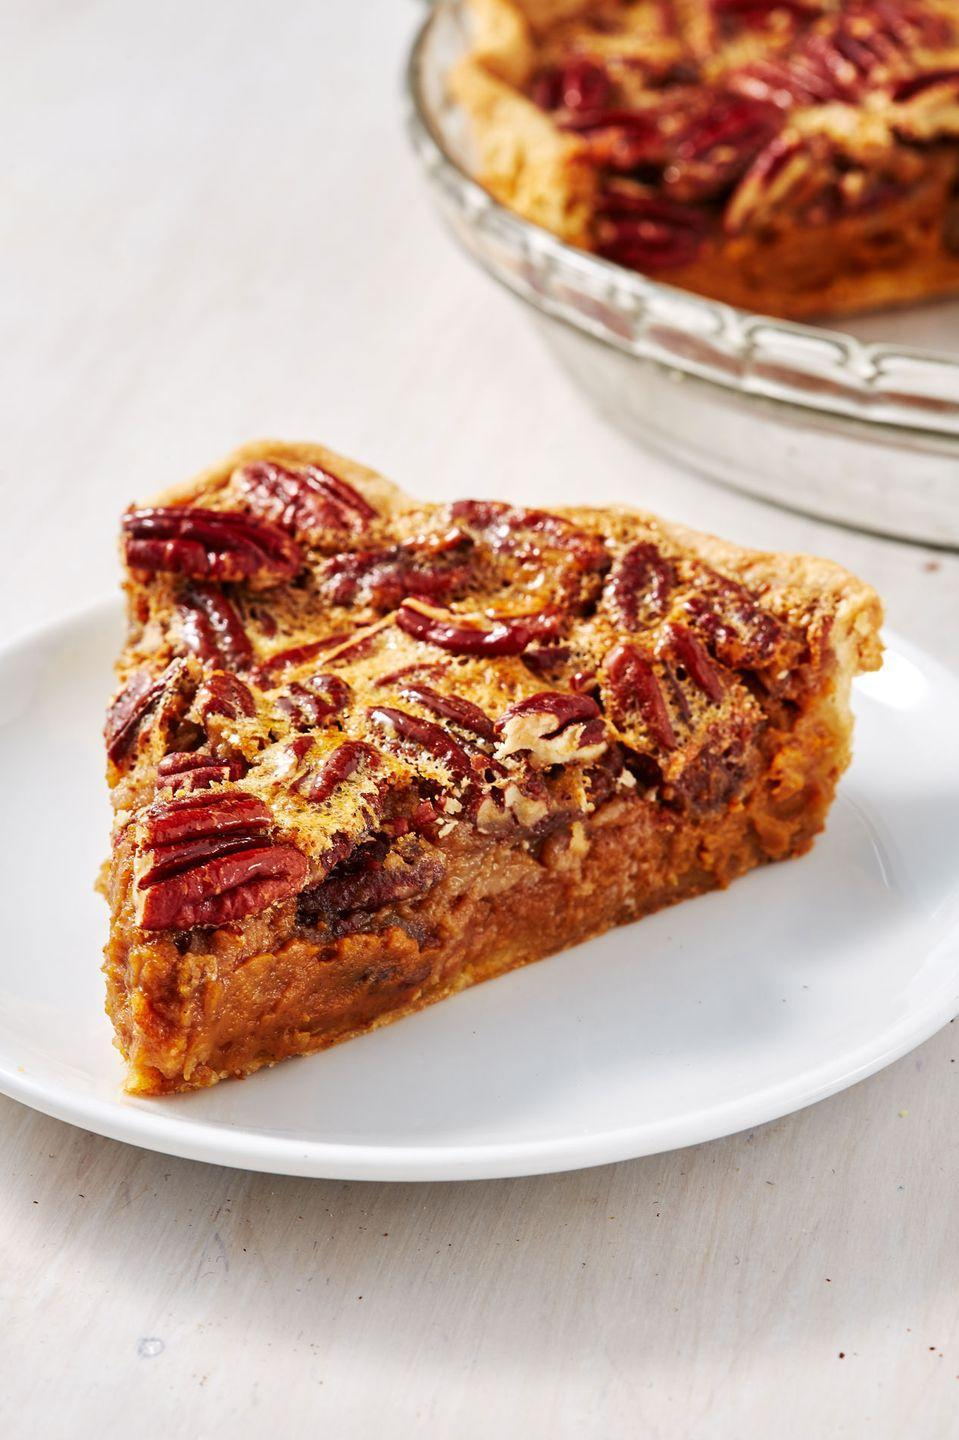 """<p>Why choose one pie when you can make this? </p><p>Get the recipe from <a href=""""http://www.delish.com/holiday-recipes/thanksgiving/a28649822/pumpkin-pecan-pie-recipe/"""" rel=""""nofollow noopener"""" target=""""_blank"""" data-ylk=""""slk:Delish"""" class=""""link rapid-noclick-resp"""">Delish</a>.</p>"""